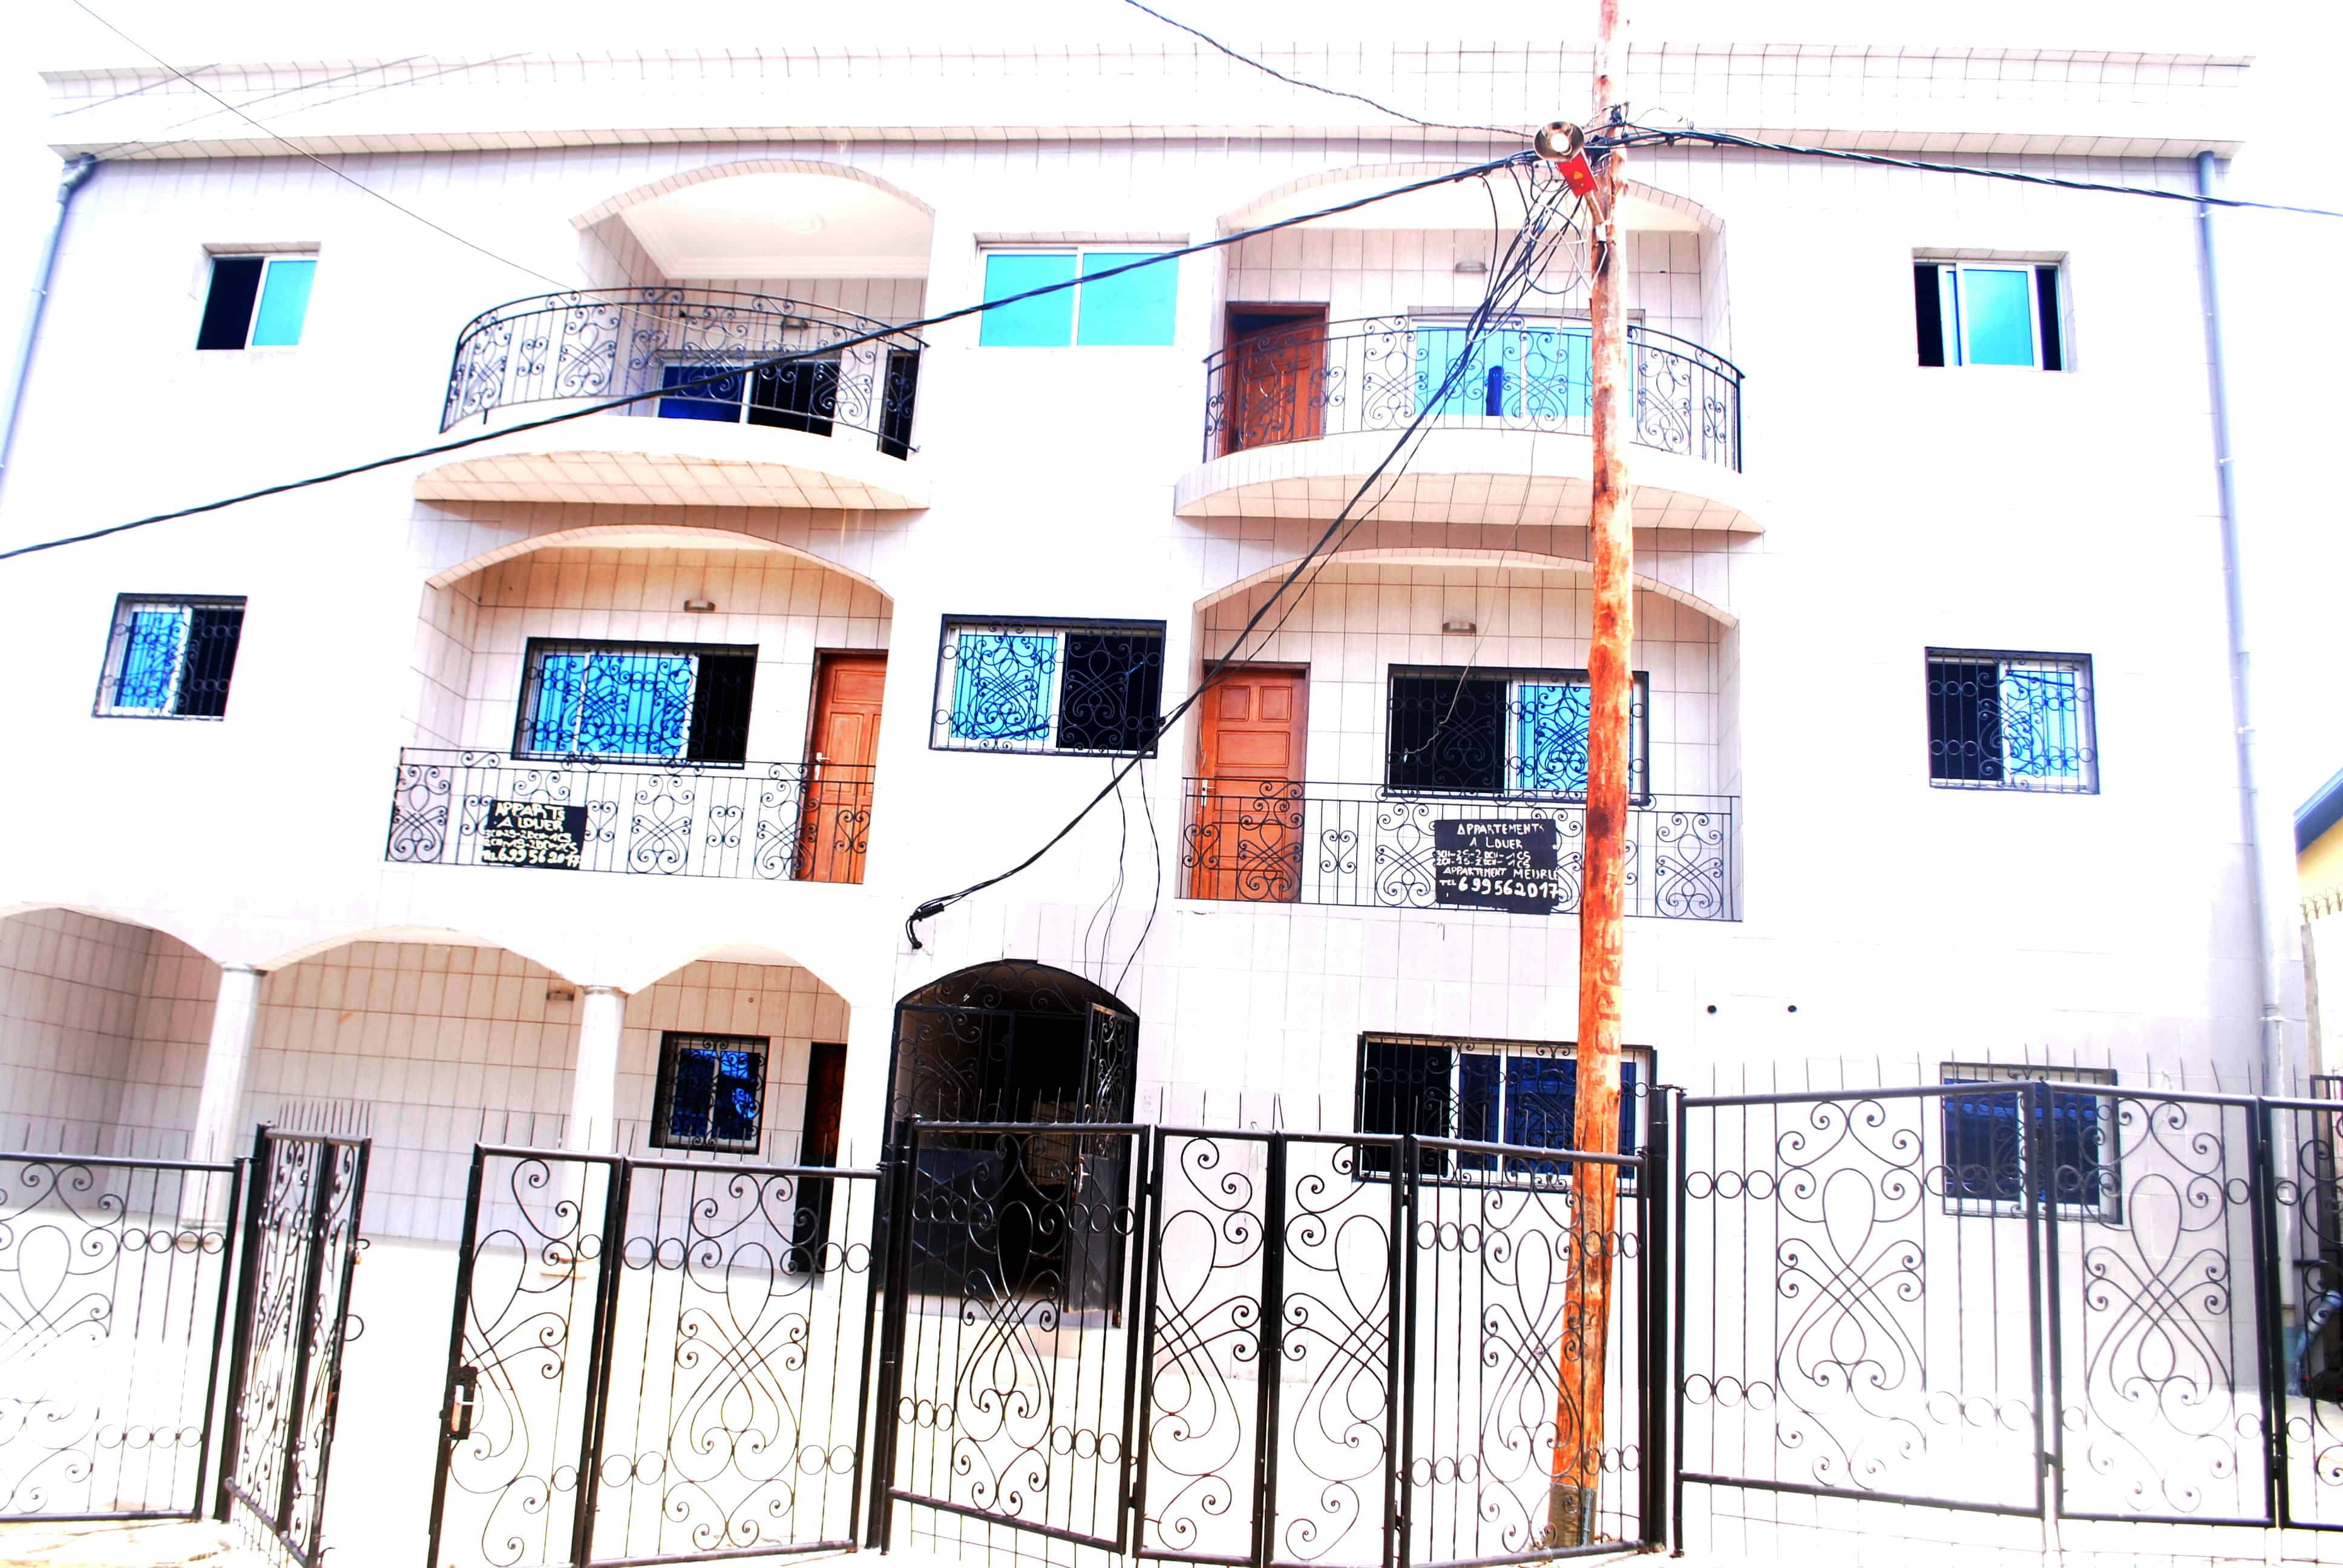 Apartment to rent - Douala, Logpom, LOGPOM FIN GOUDRON, LOGBESSOU, MAKEPE - 1 living room(s), 2 bedroom(s), 2 bathroom(s) - 110 000 FCFA / month